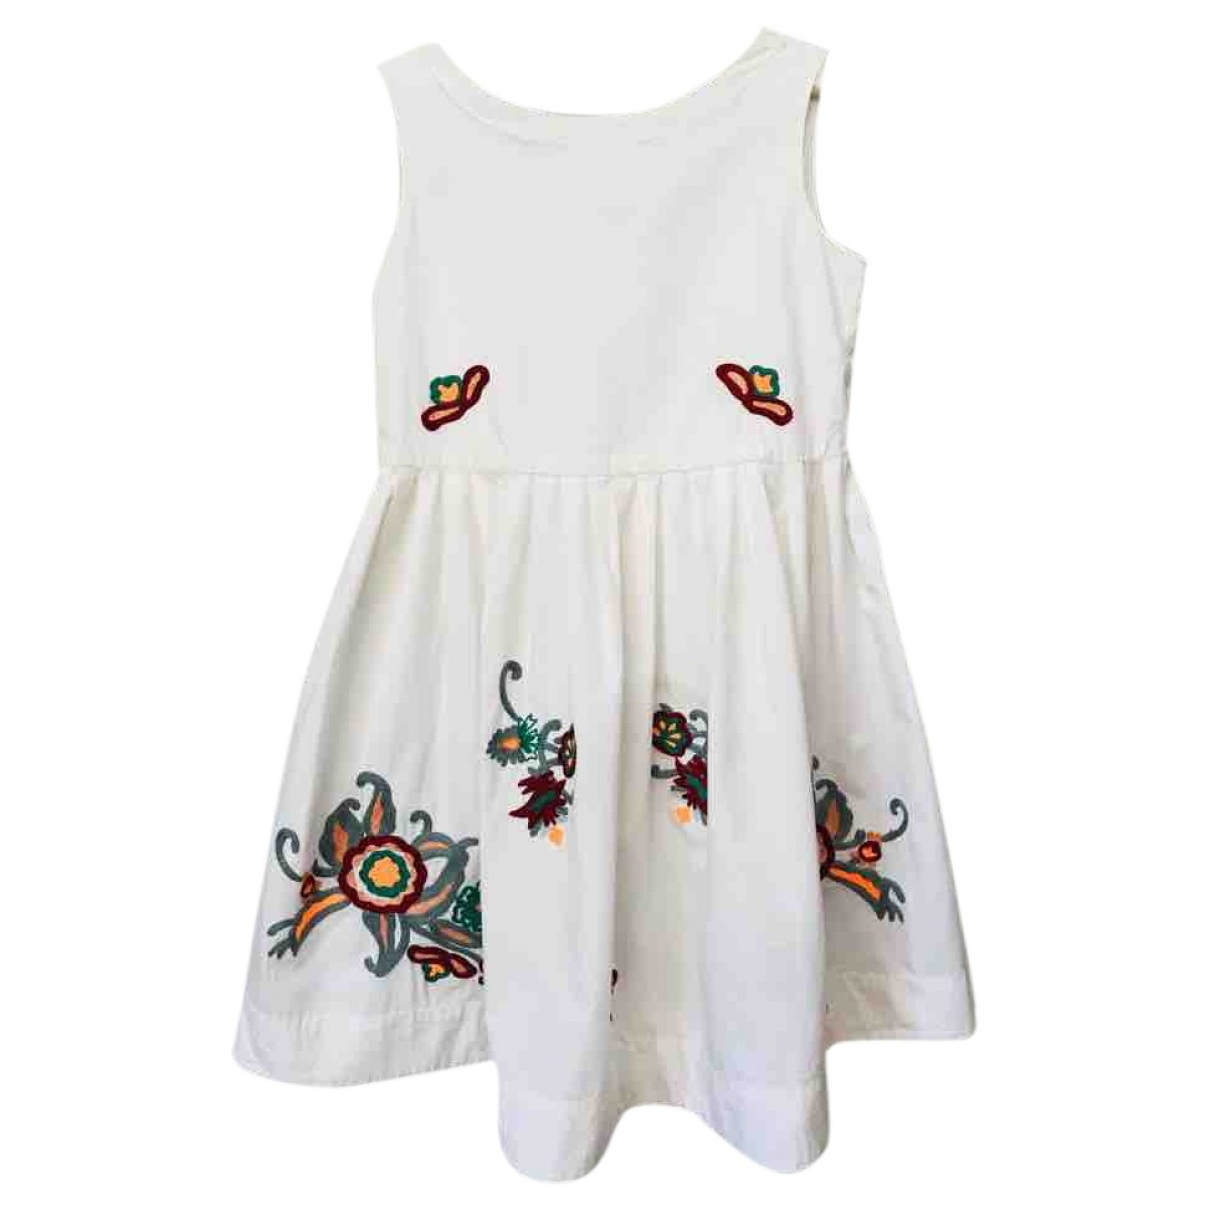 Bonpoint \N White Cotton dress for Kids 8 years - up to 128cm FR